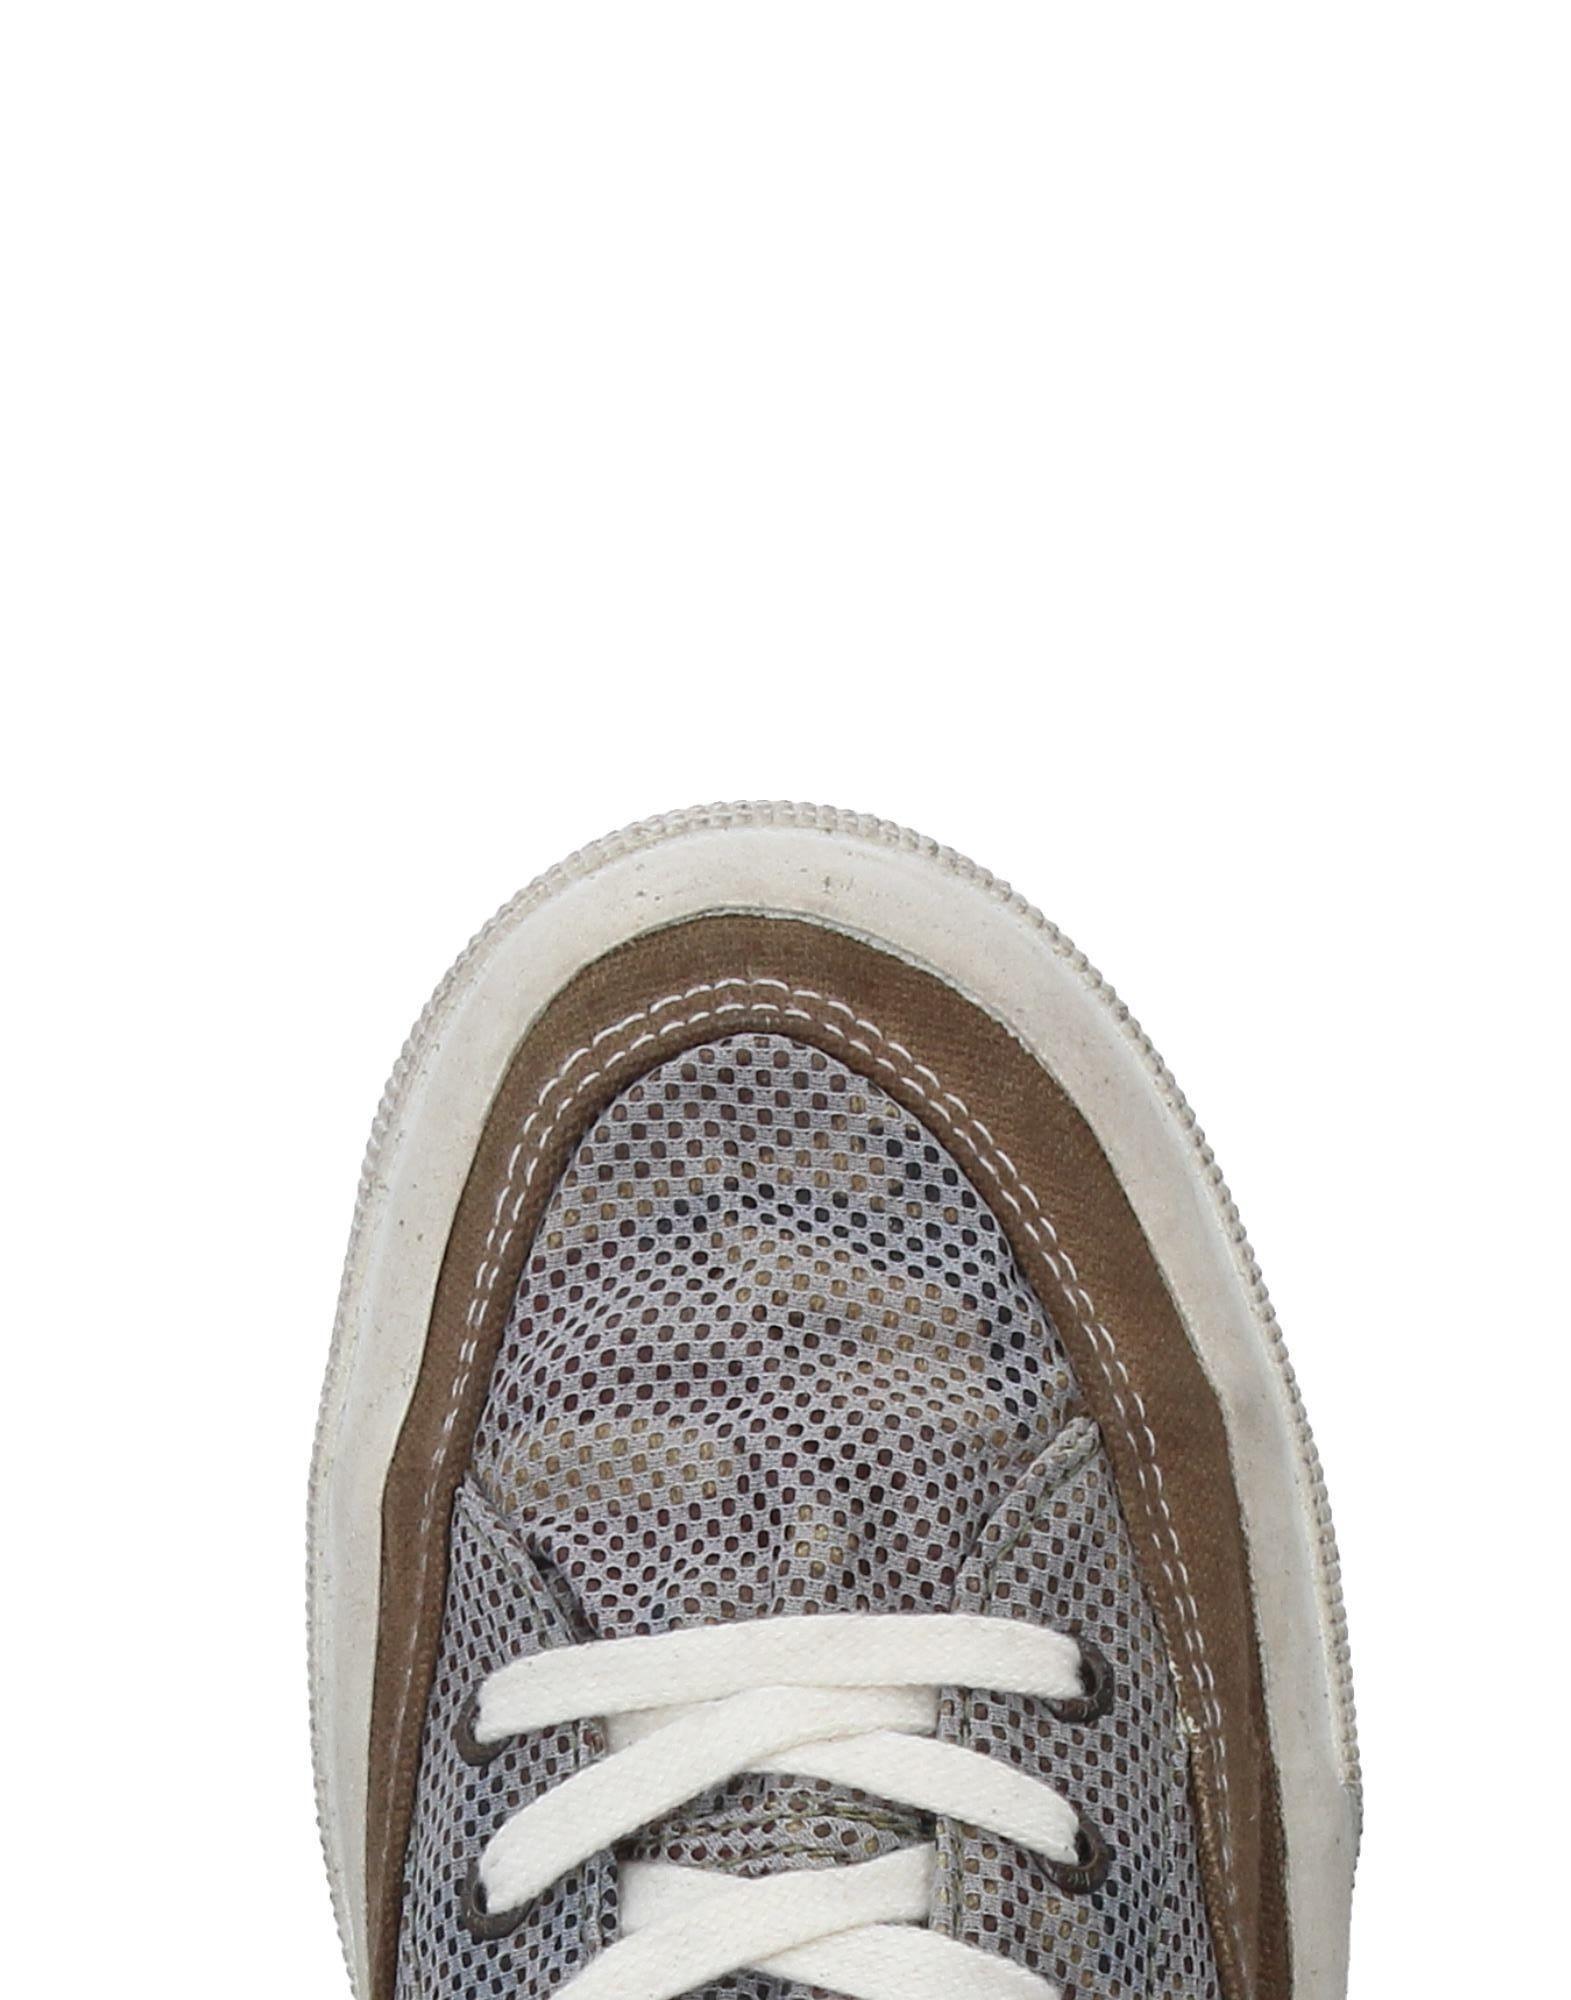 Sneakers Collection Privèe? For Superga Homme - Sneakers Collection Privèe? For Superga sur